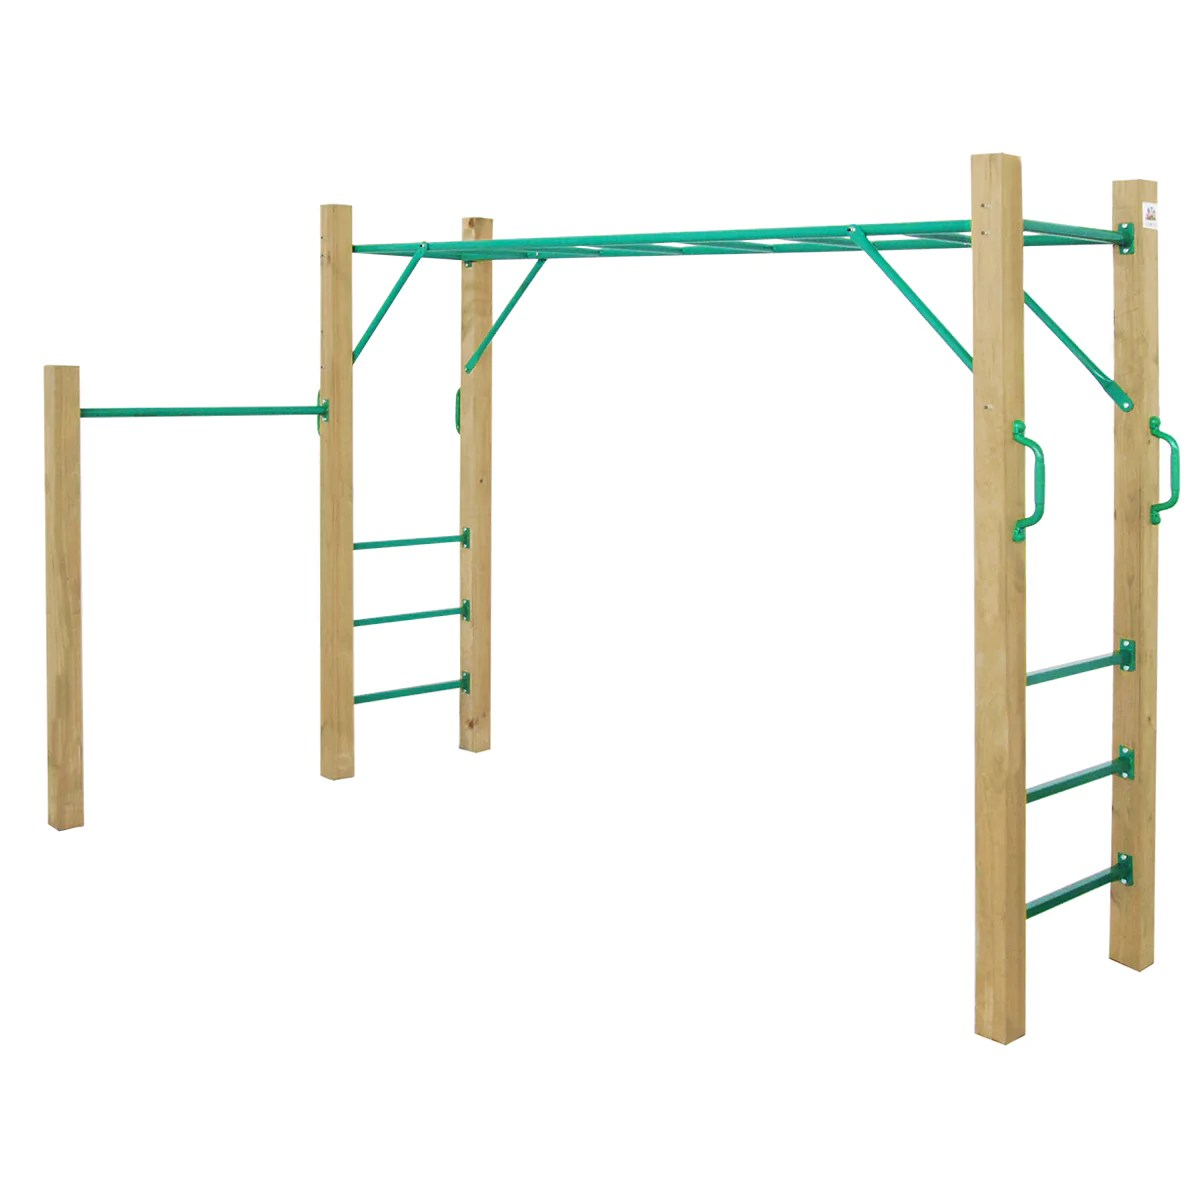 Monkey Bar Amazon 2 5m Monkey Bar Set Lifespan Kids